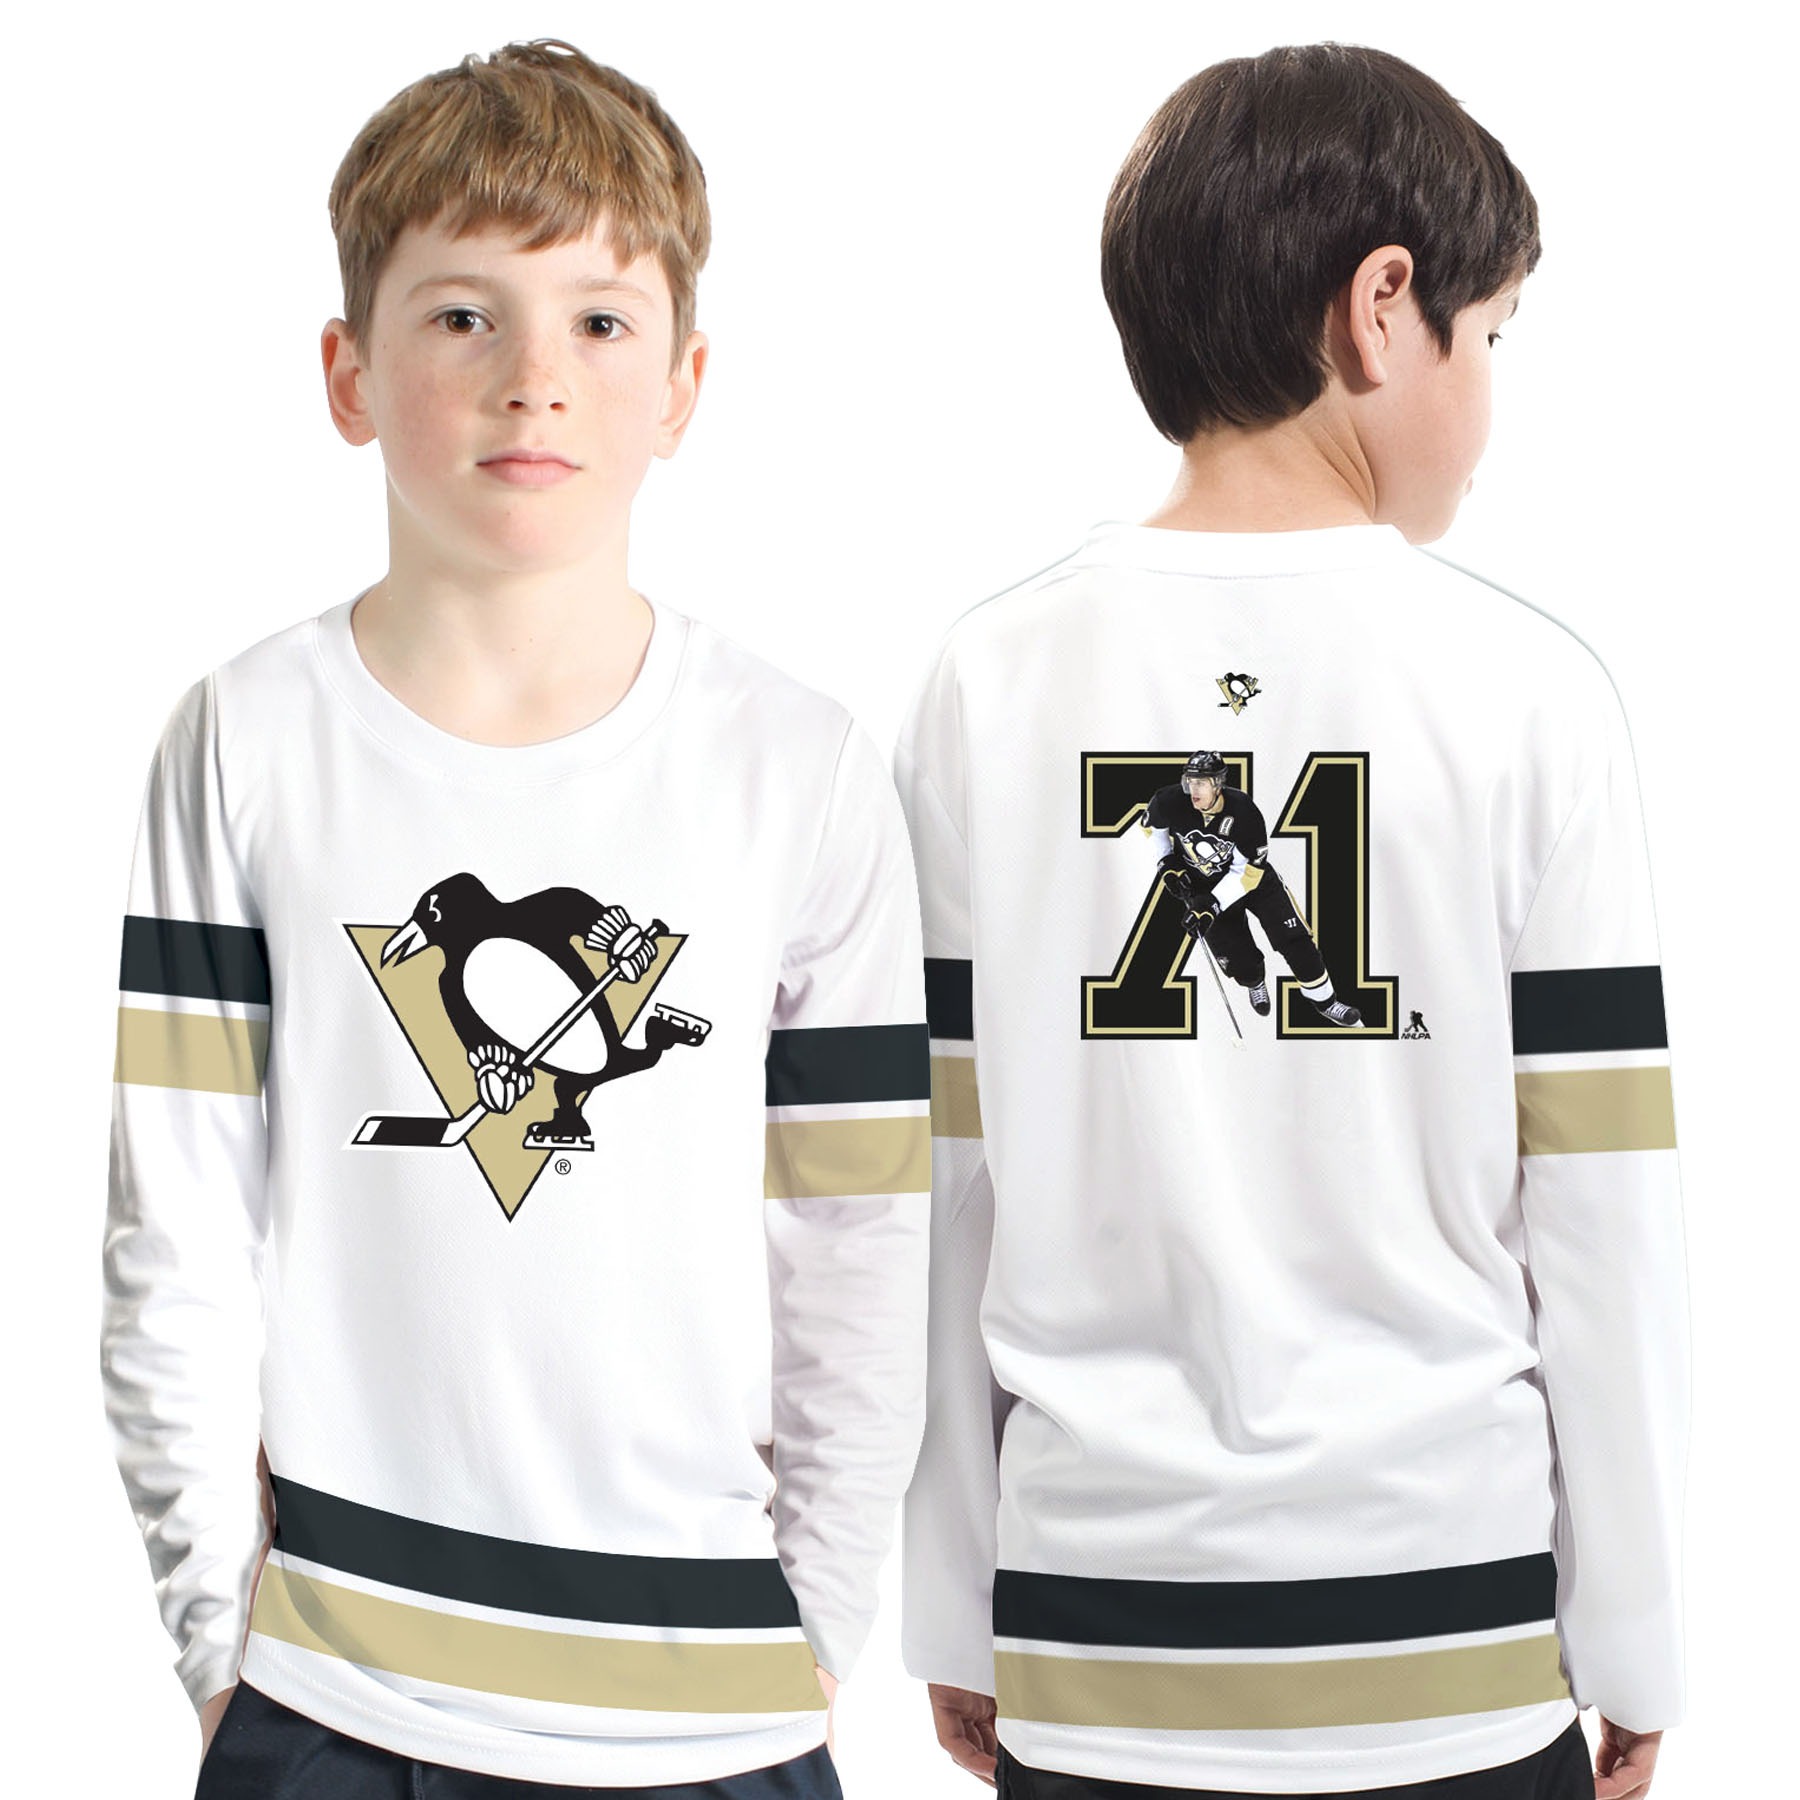 Pittsburgh Penguins NHL Scrimmage Supporters Top - Evgeni Malkin - Kids